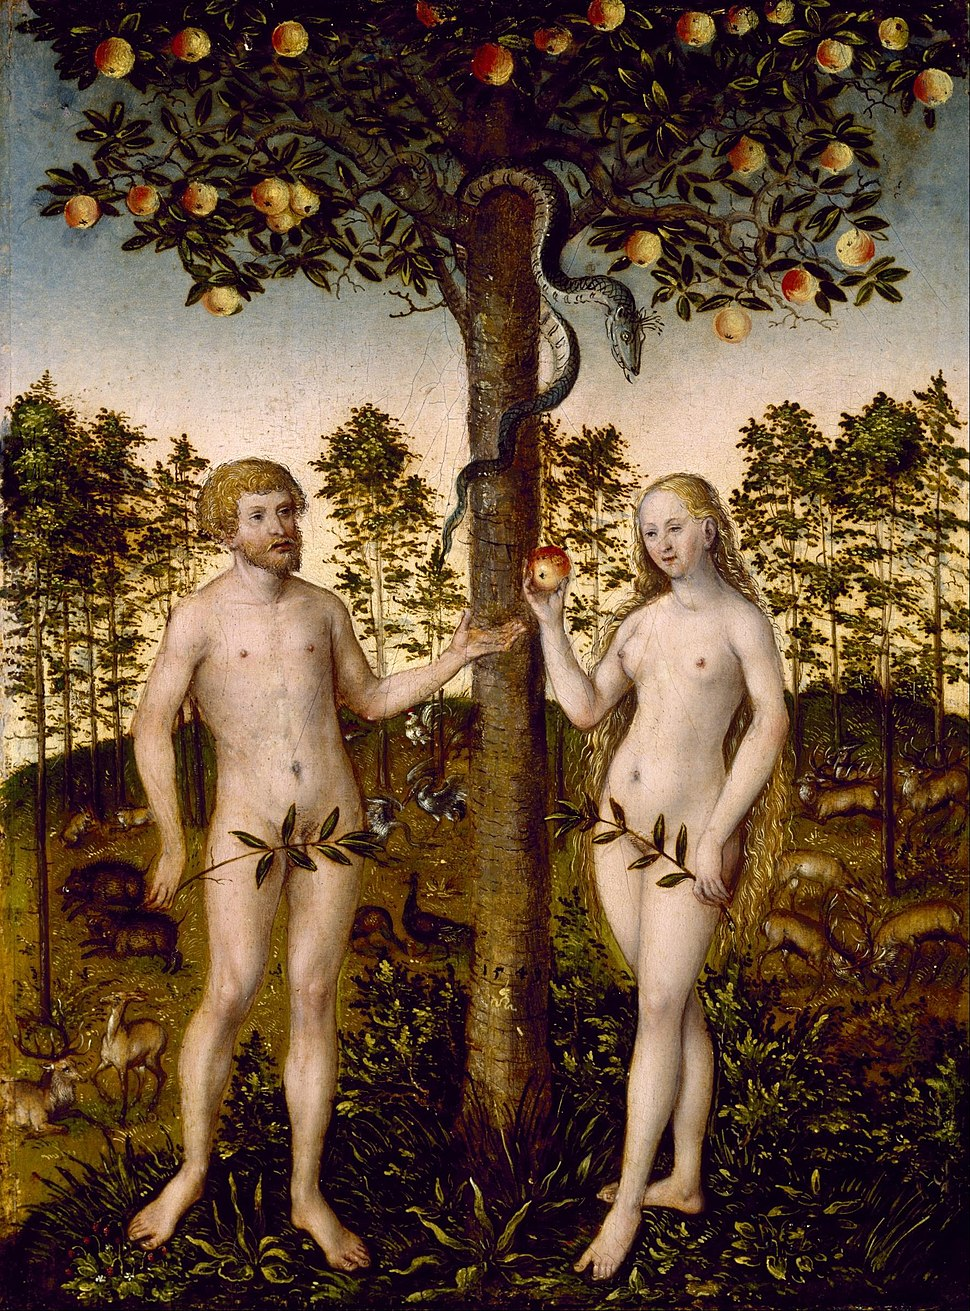 After Lucas Cranach the Younger - The Fall of Man - Google Art Project